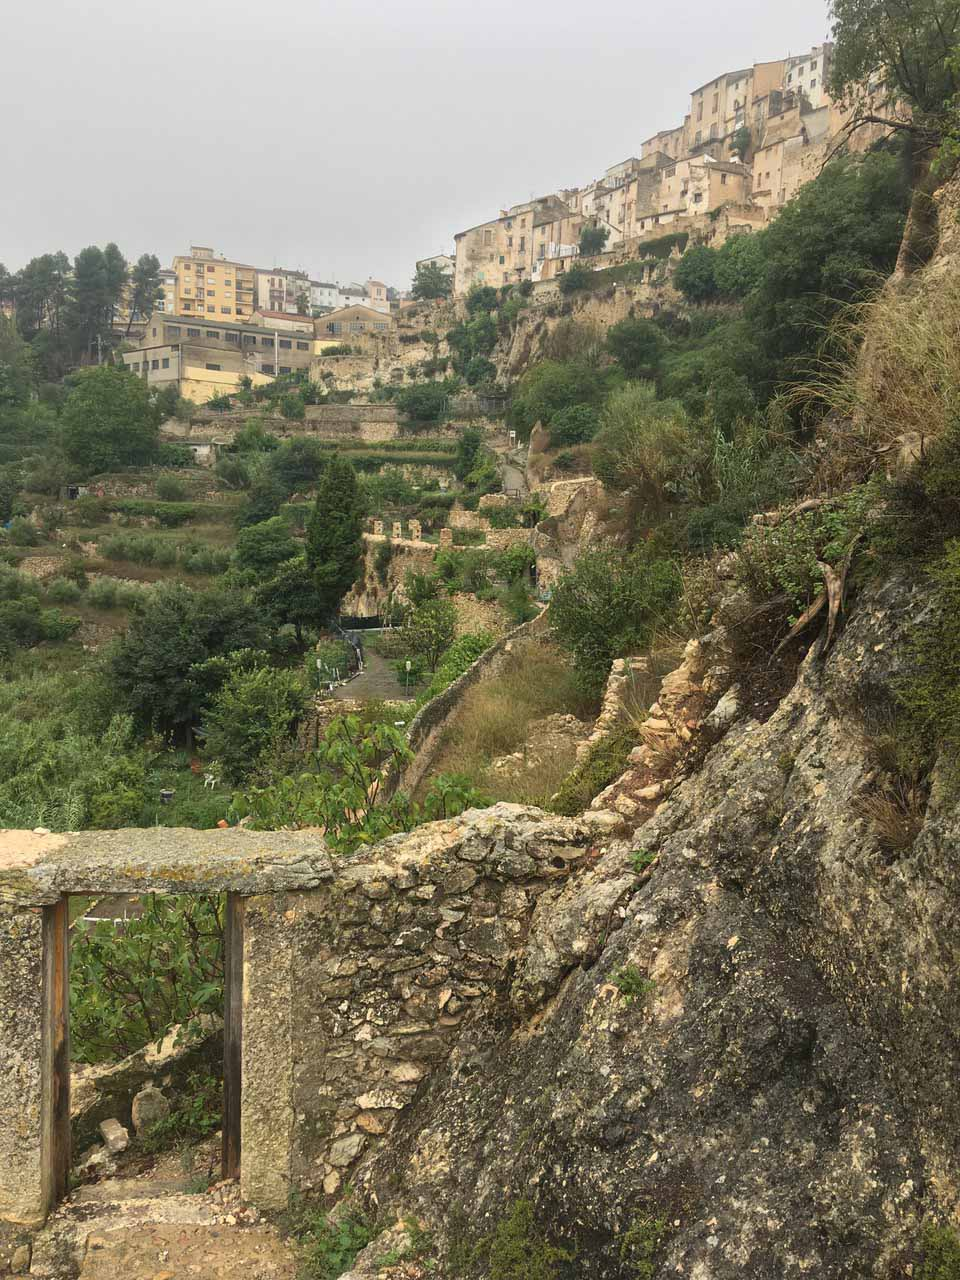 Teaching Abroad in Bocairent